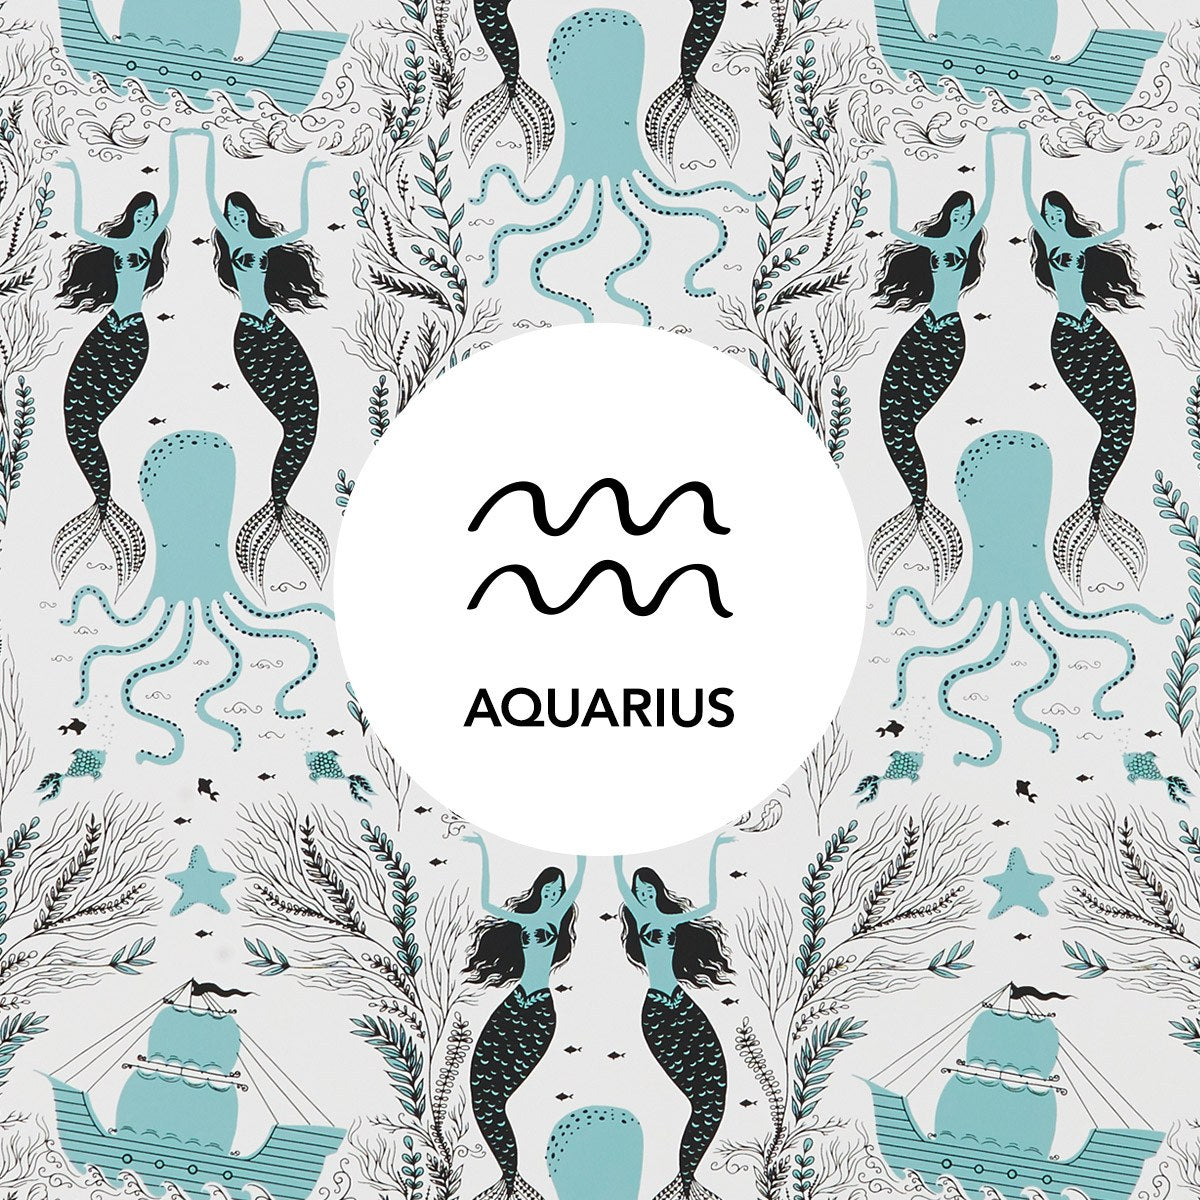 Aquarius | Mermaids Ocean wallpaper | Dinara Mirtalipova | Hygge & West